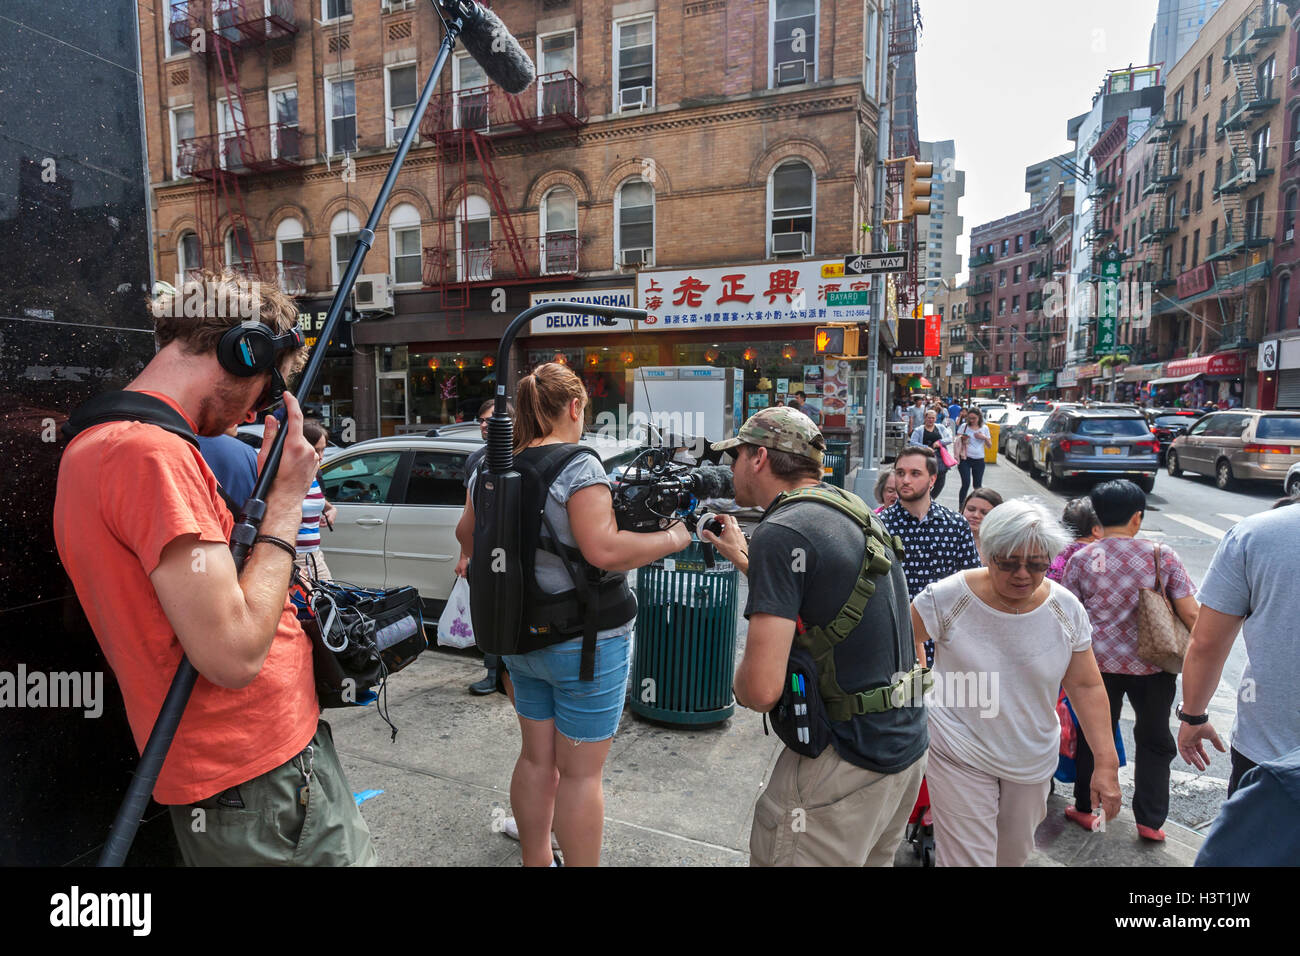 Video Filmmakers shooting in Chinatown, New York City. - Stock Image